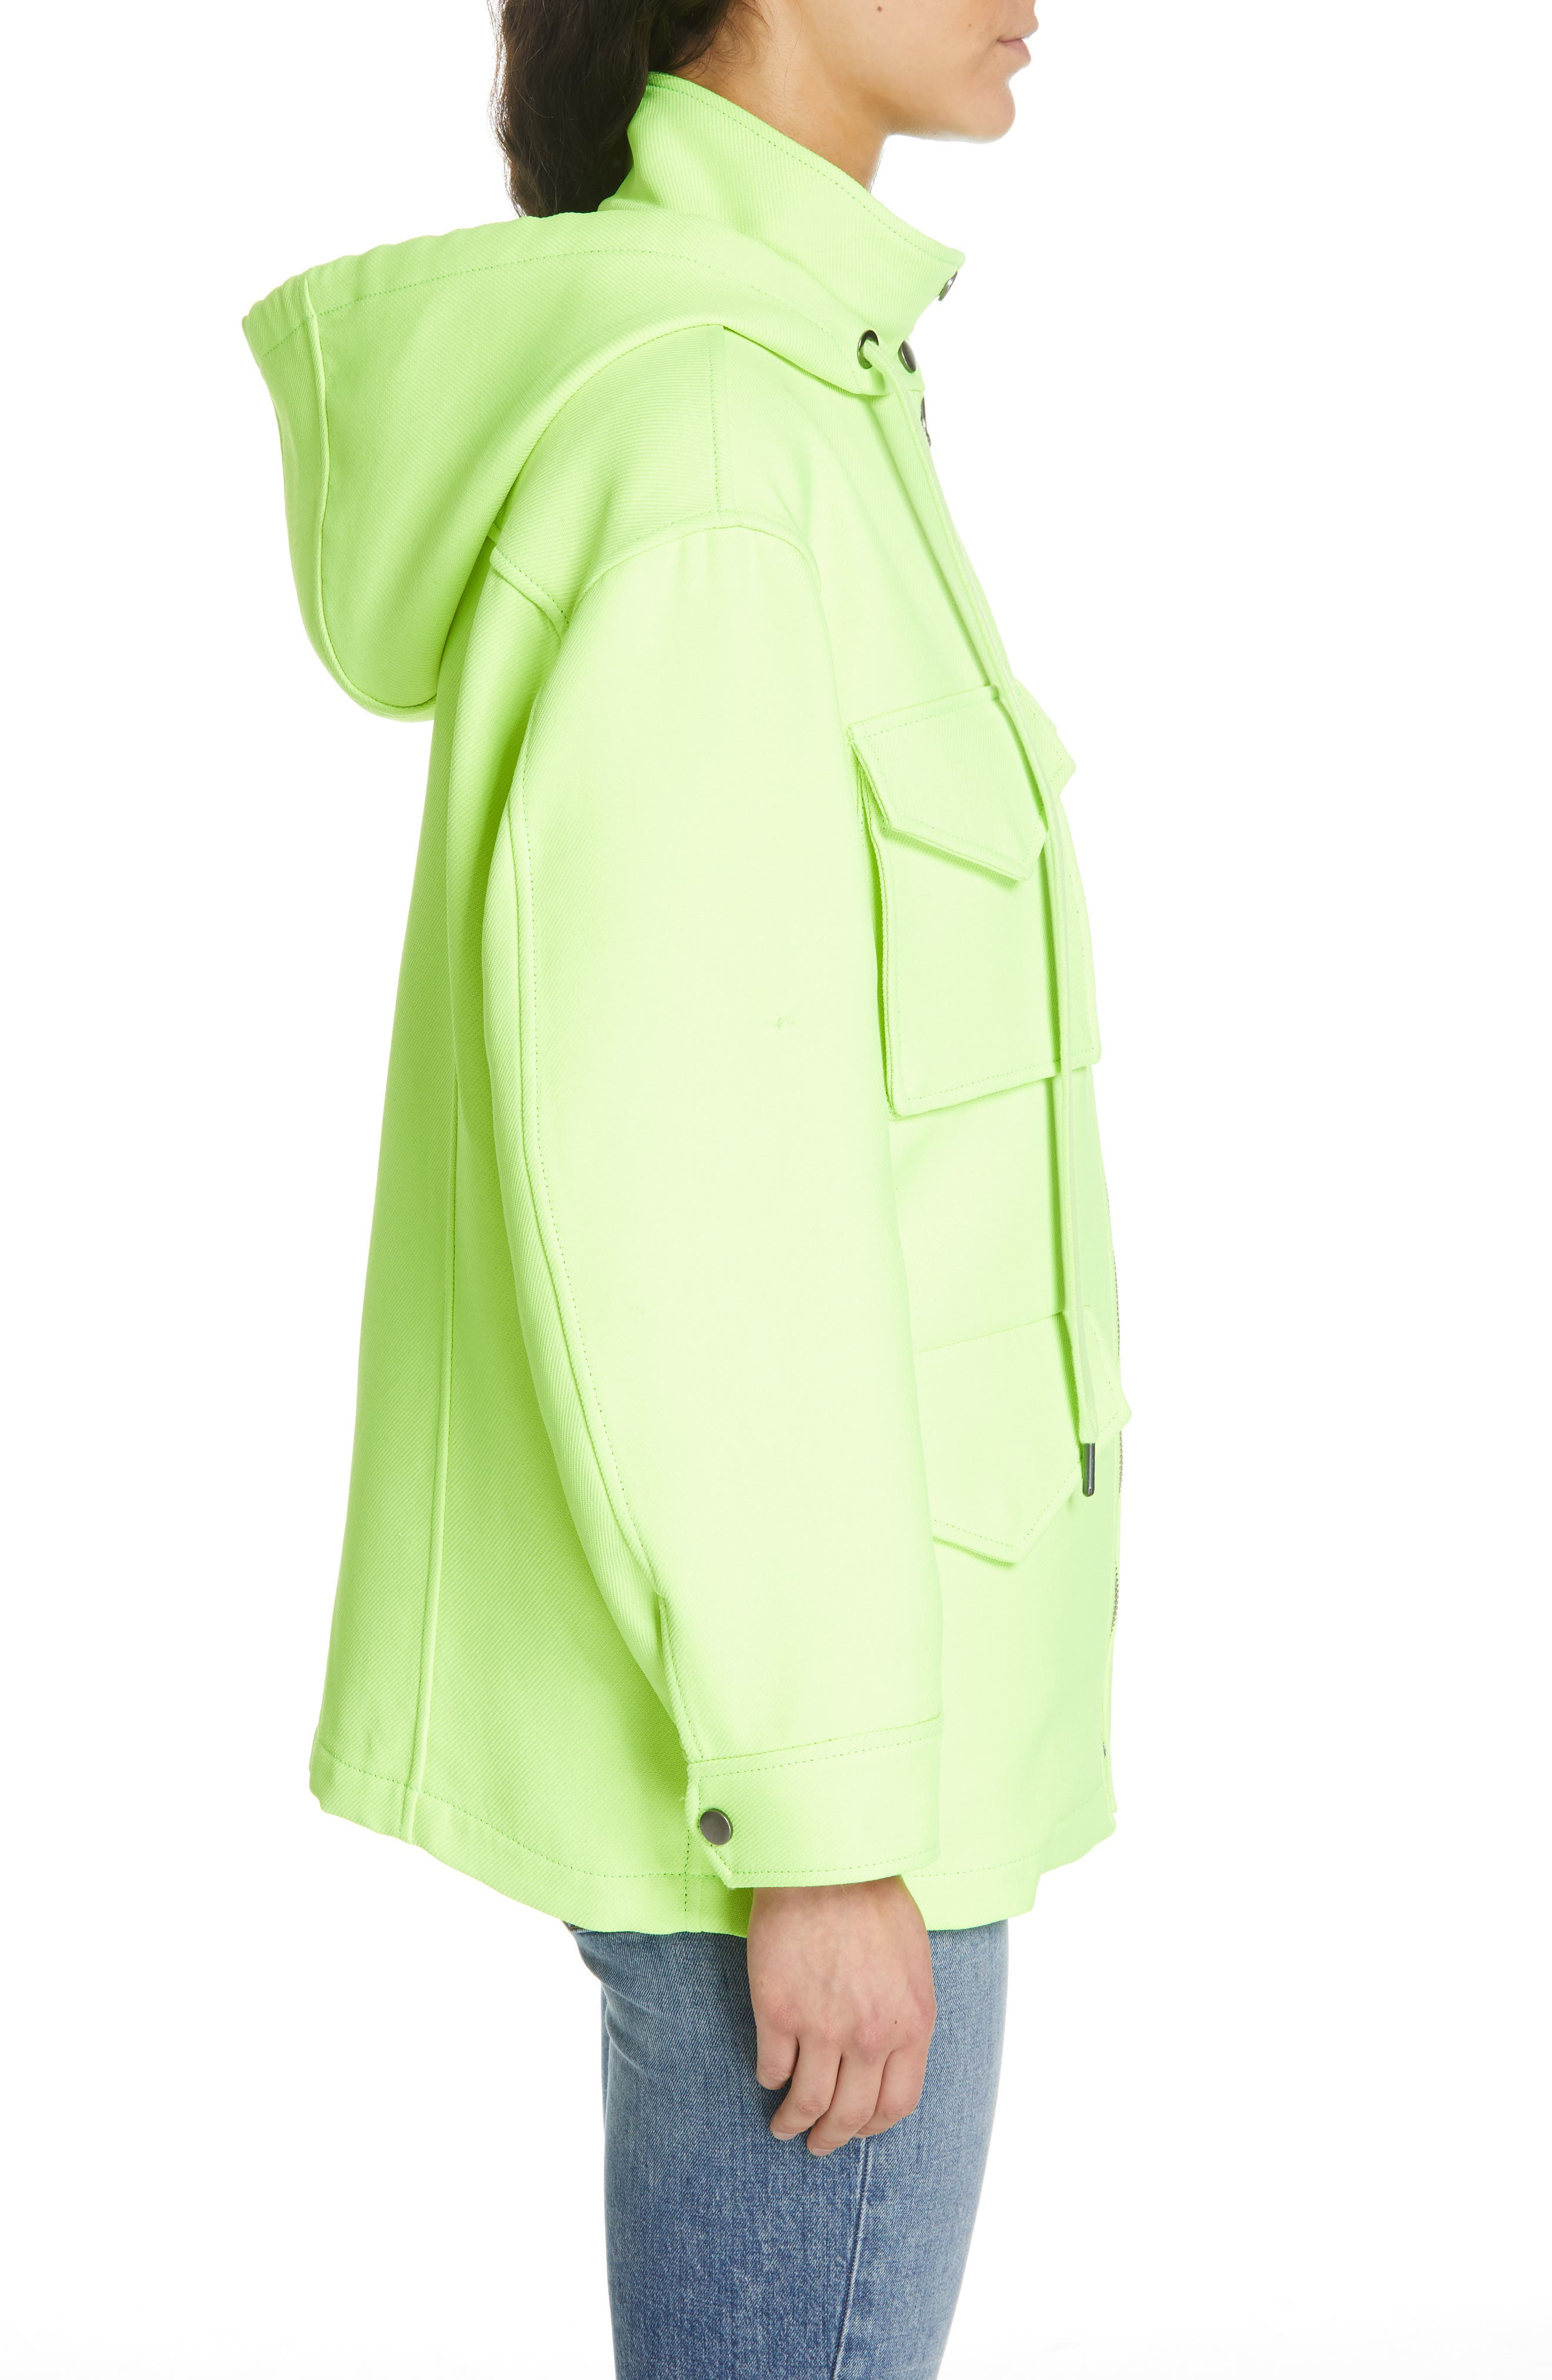 ALICE + OLIVIA,                             Russo Hooded Jacket,                             Alternate thumbnail 3, color,                             NEON YELLOW